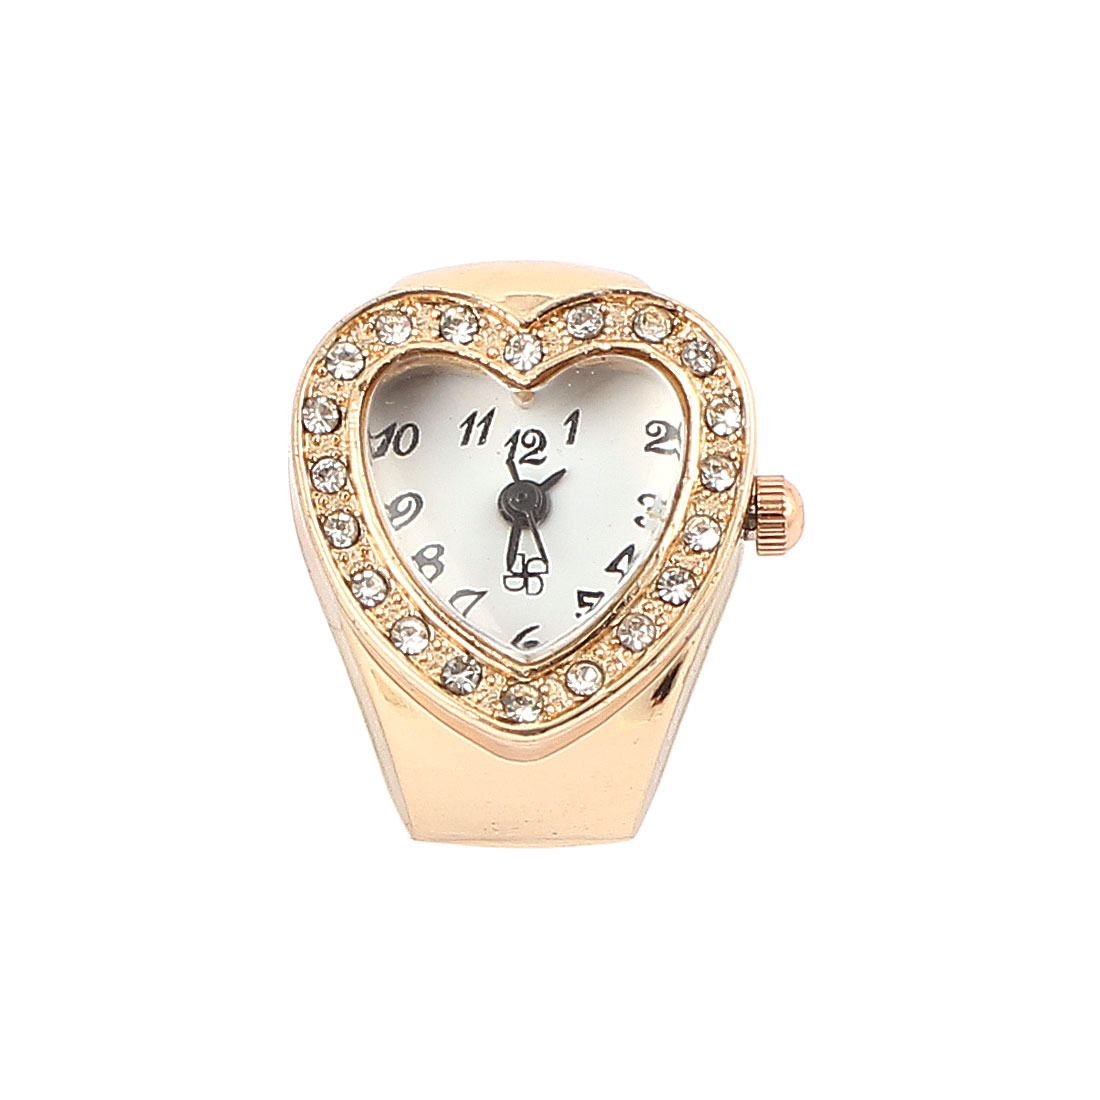 Lady Elastic Band Heart Analog Dial Finger Ring Watch Copper Color US 4 1/4